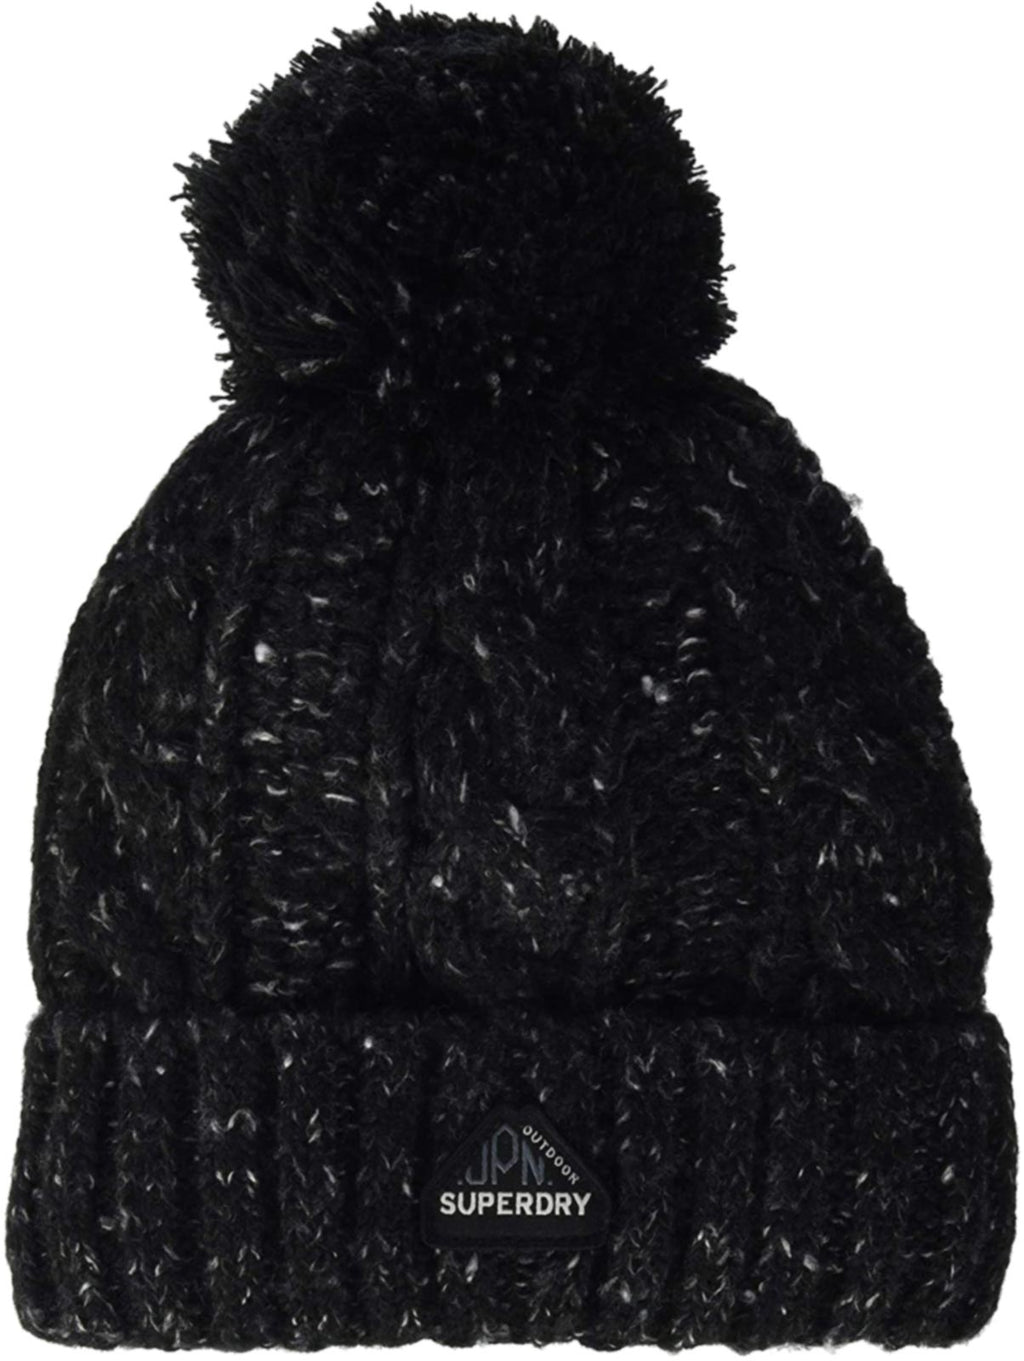 Superdry Gracie Cable Beanie Bobble Hat Black